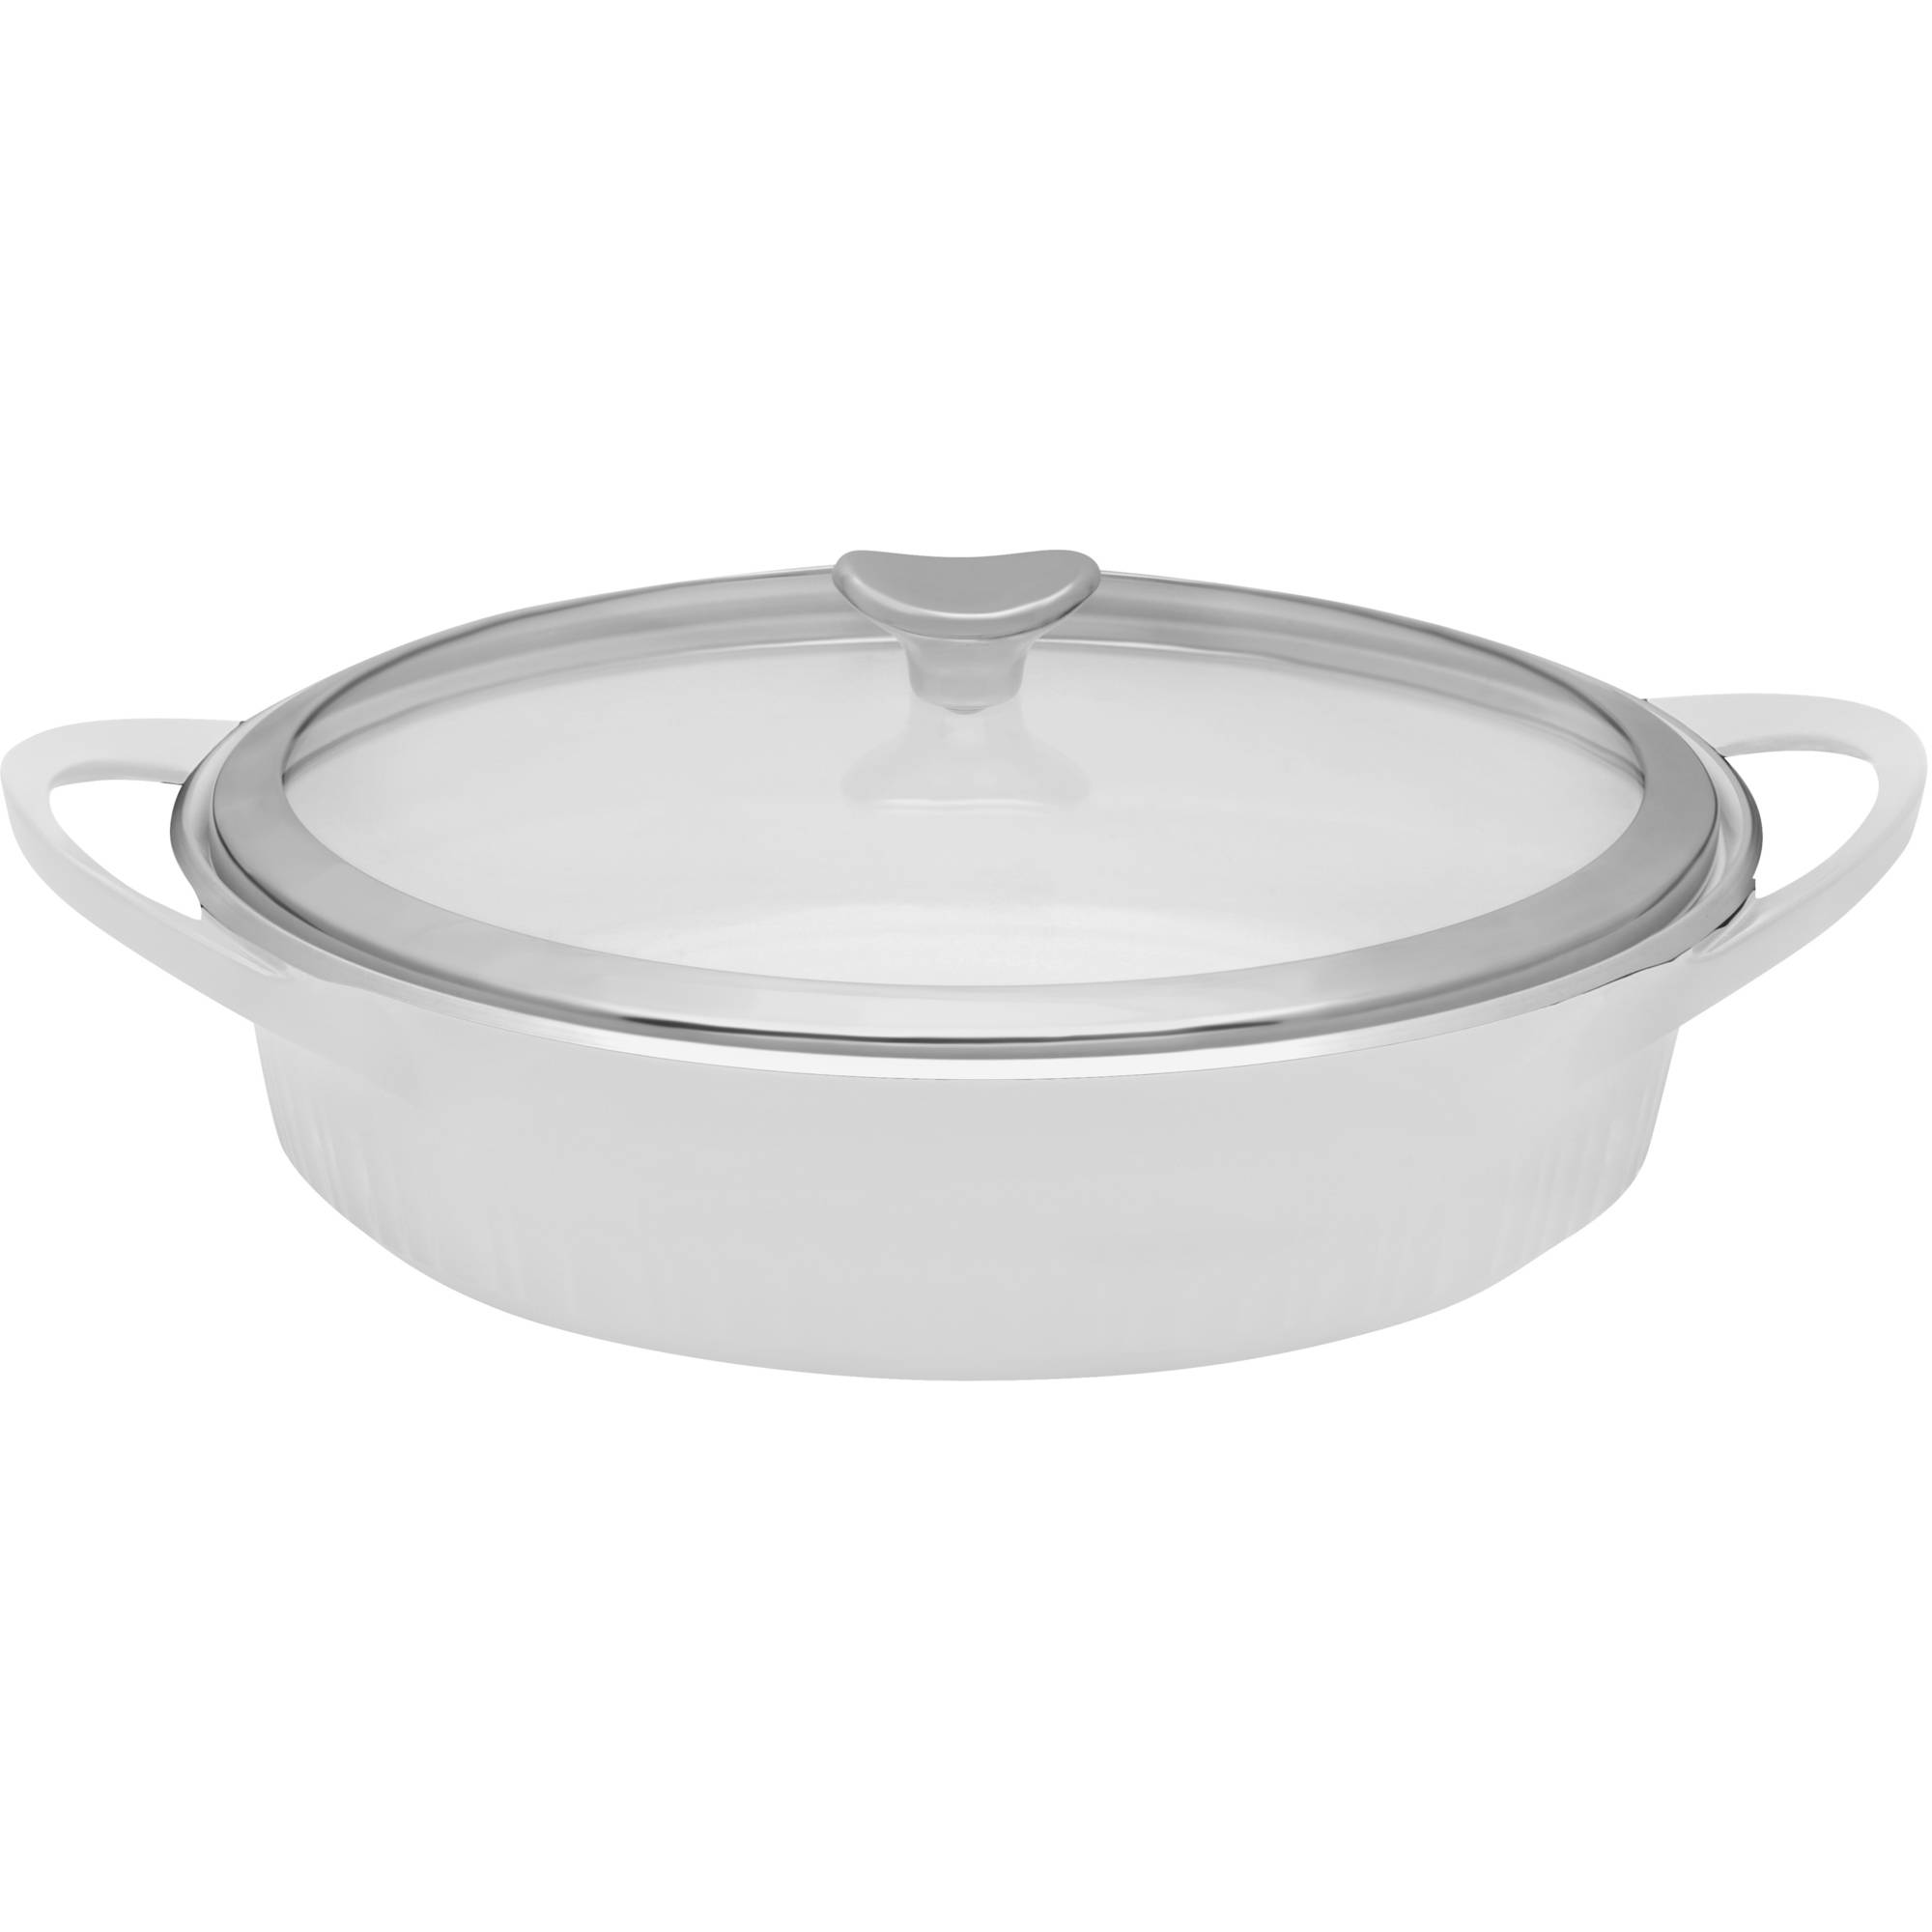 CorningWare 4-Quart French White Cast Aluminum Braiser with Glass Cover by World Kitchen LLC